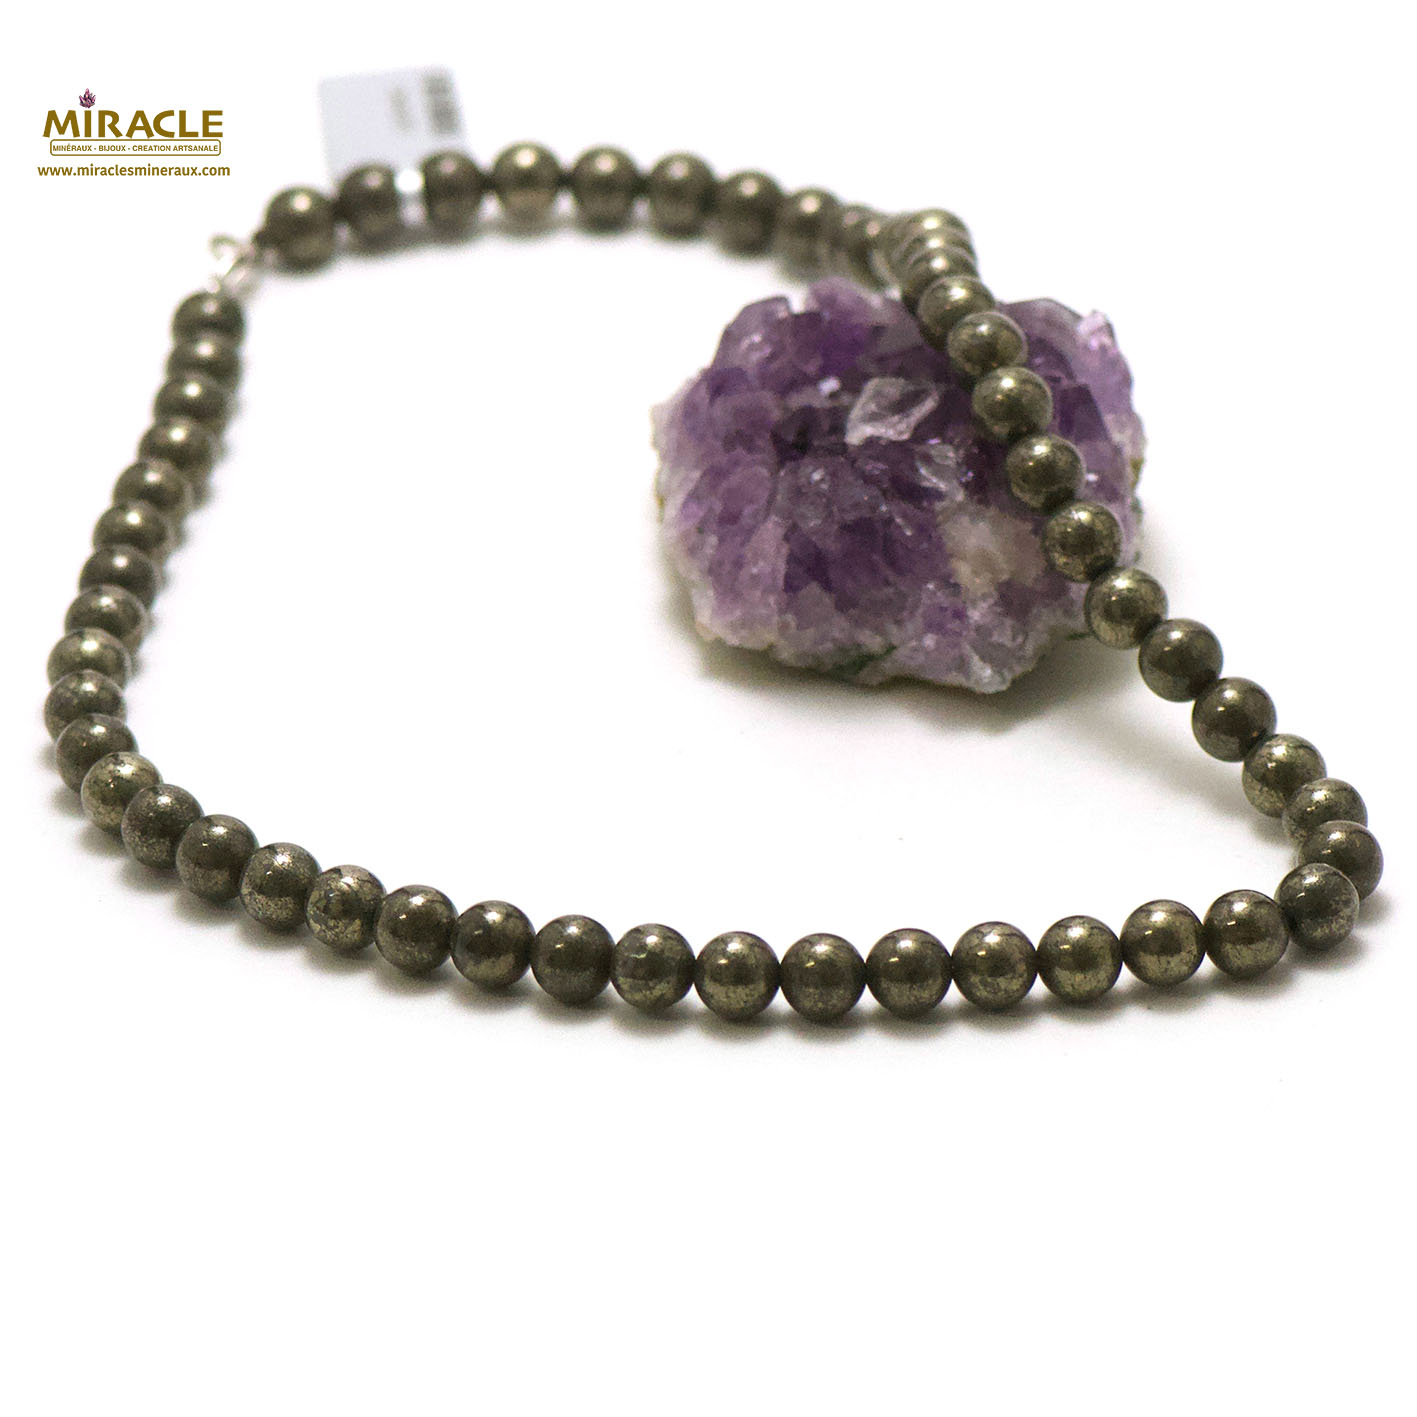 Collier pyrite, perle ronde 8 mm